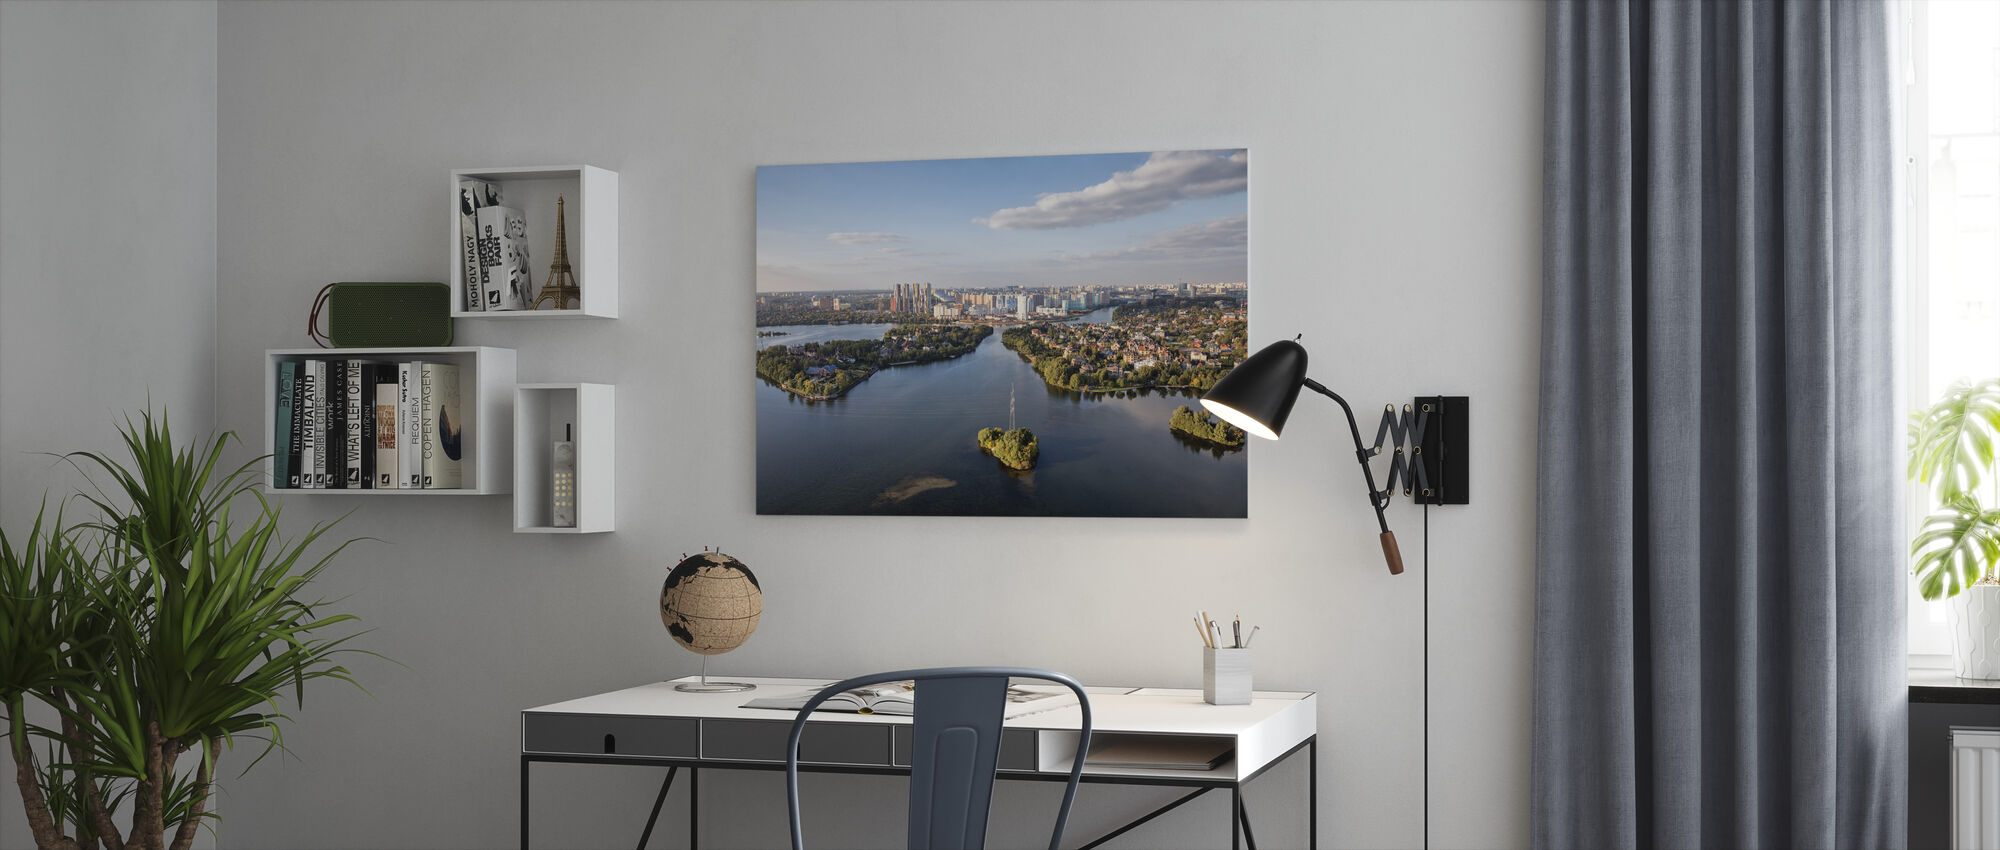 Pavshino District, Moscow - Canvas print - Office